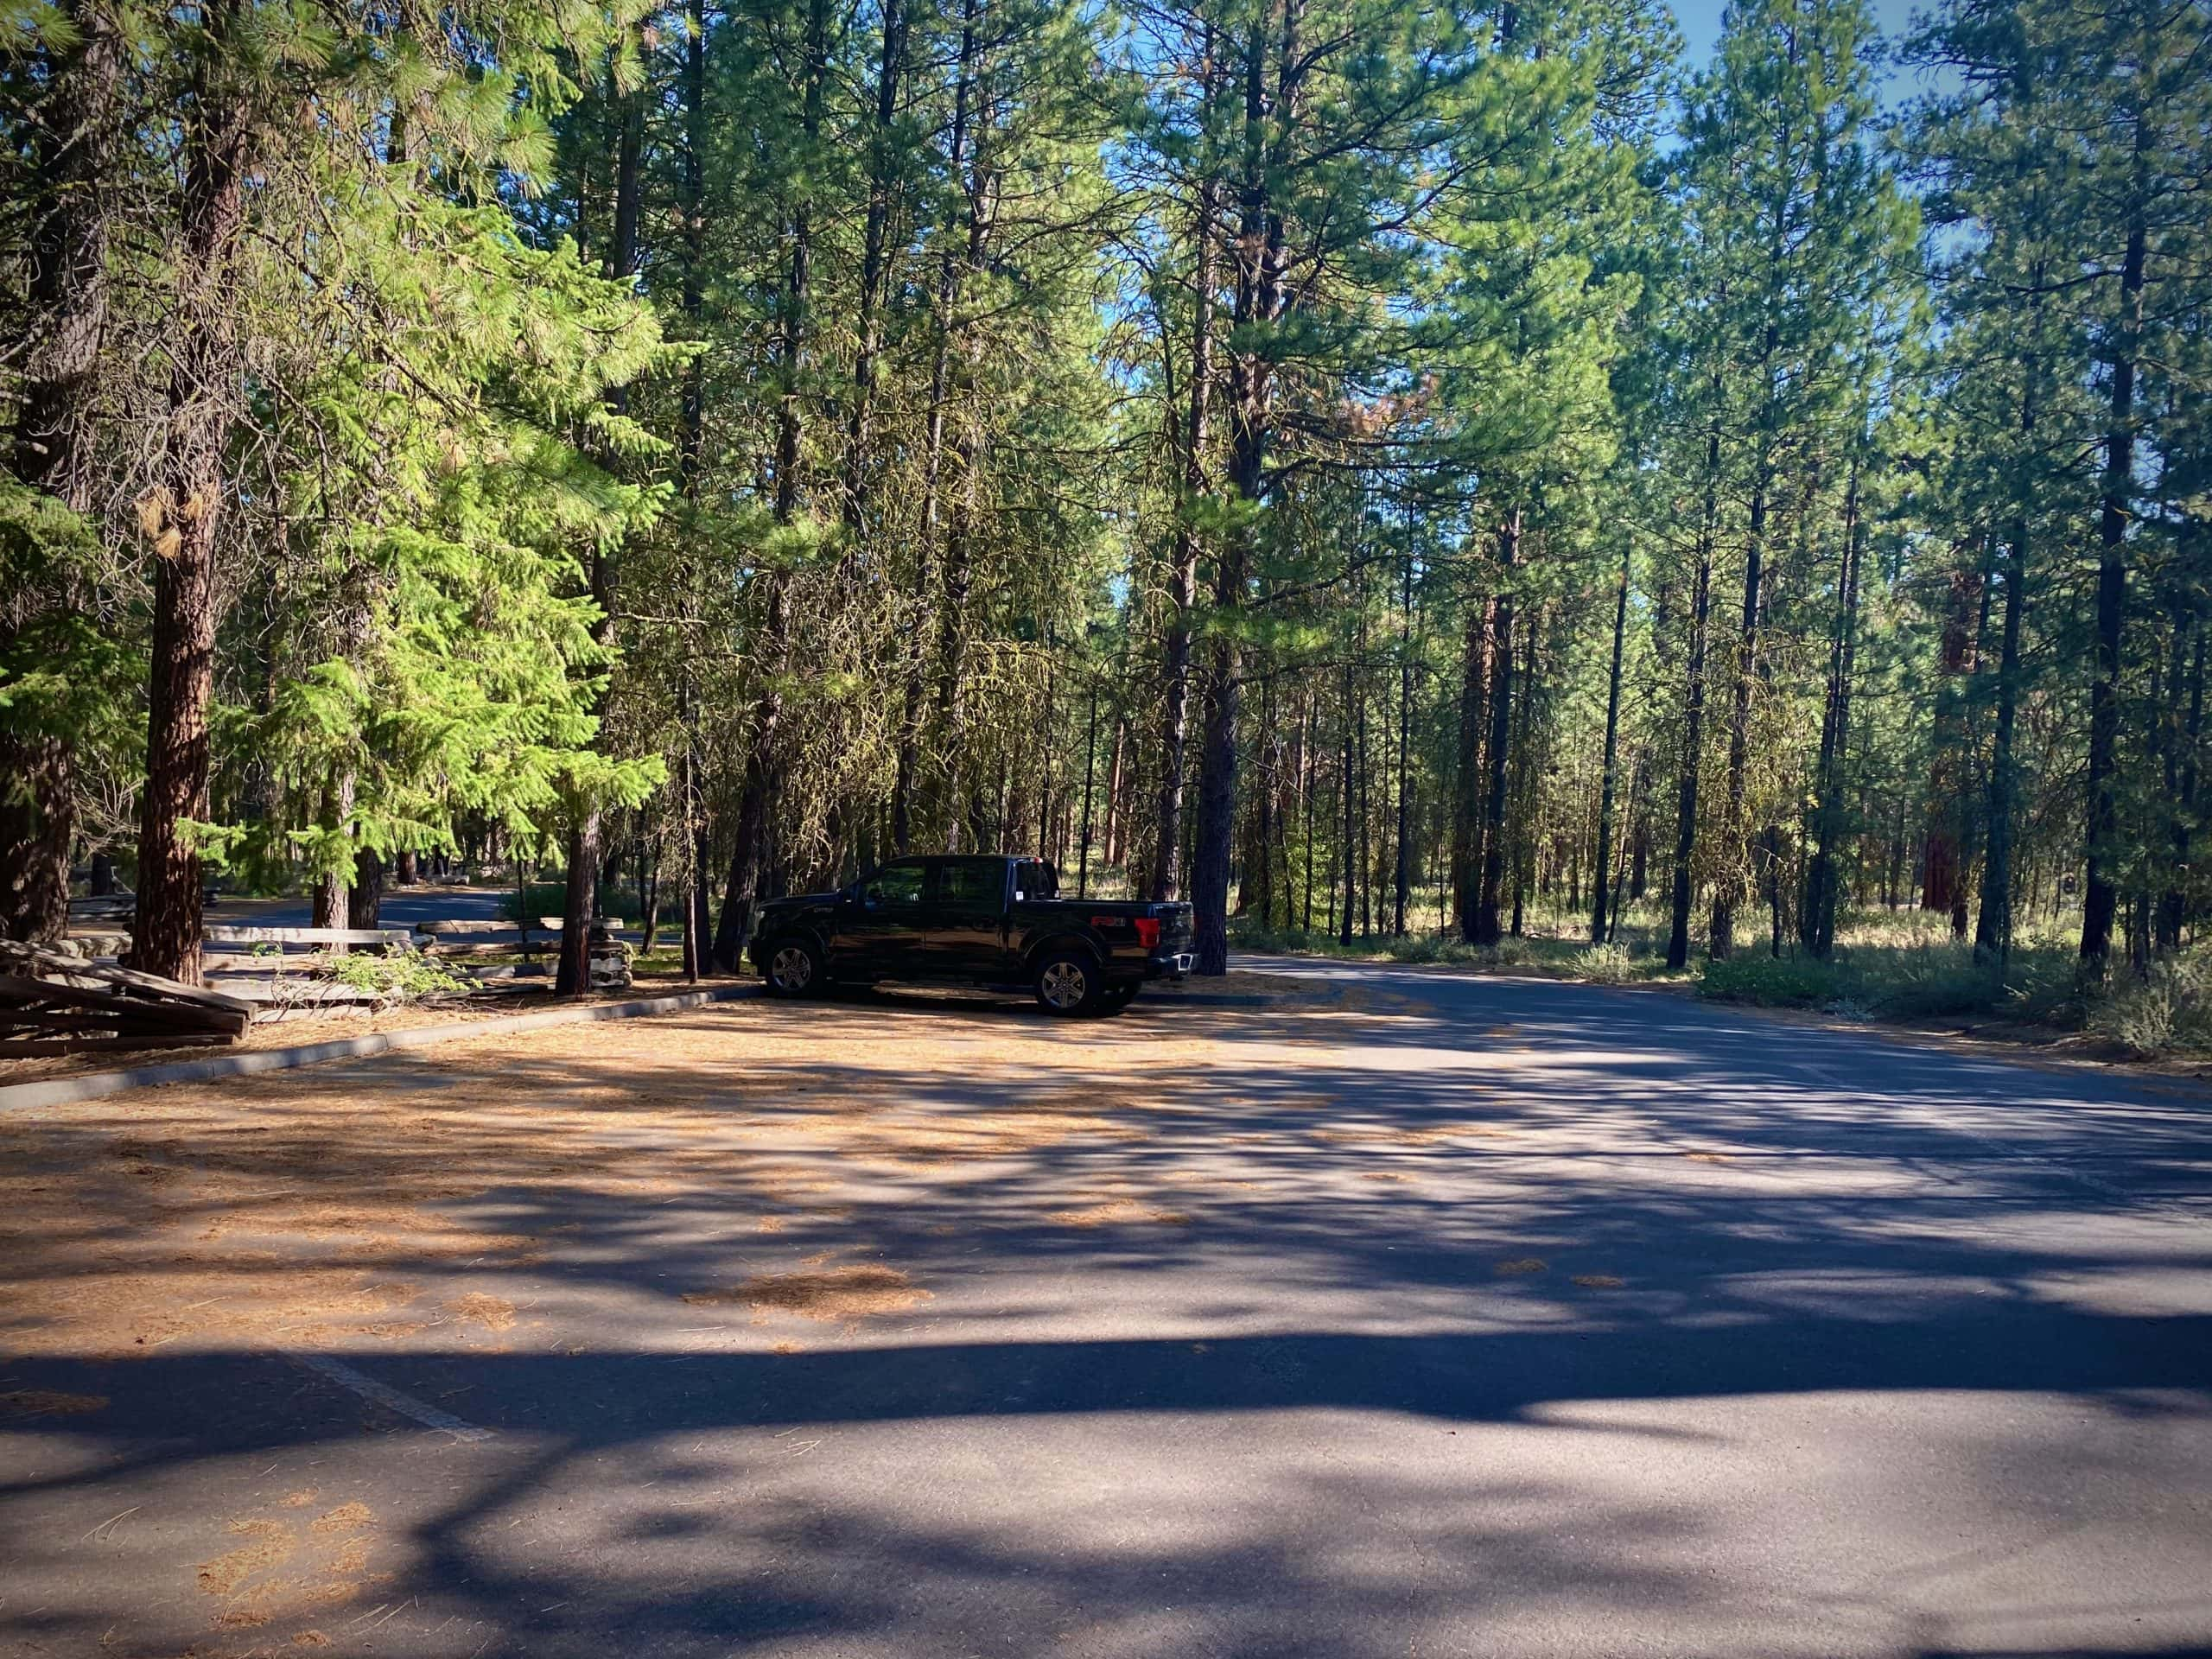 The parking area for the Head of the Metolius viewpoint near Camp Sherman, OR.